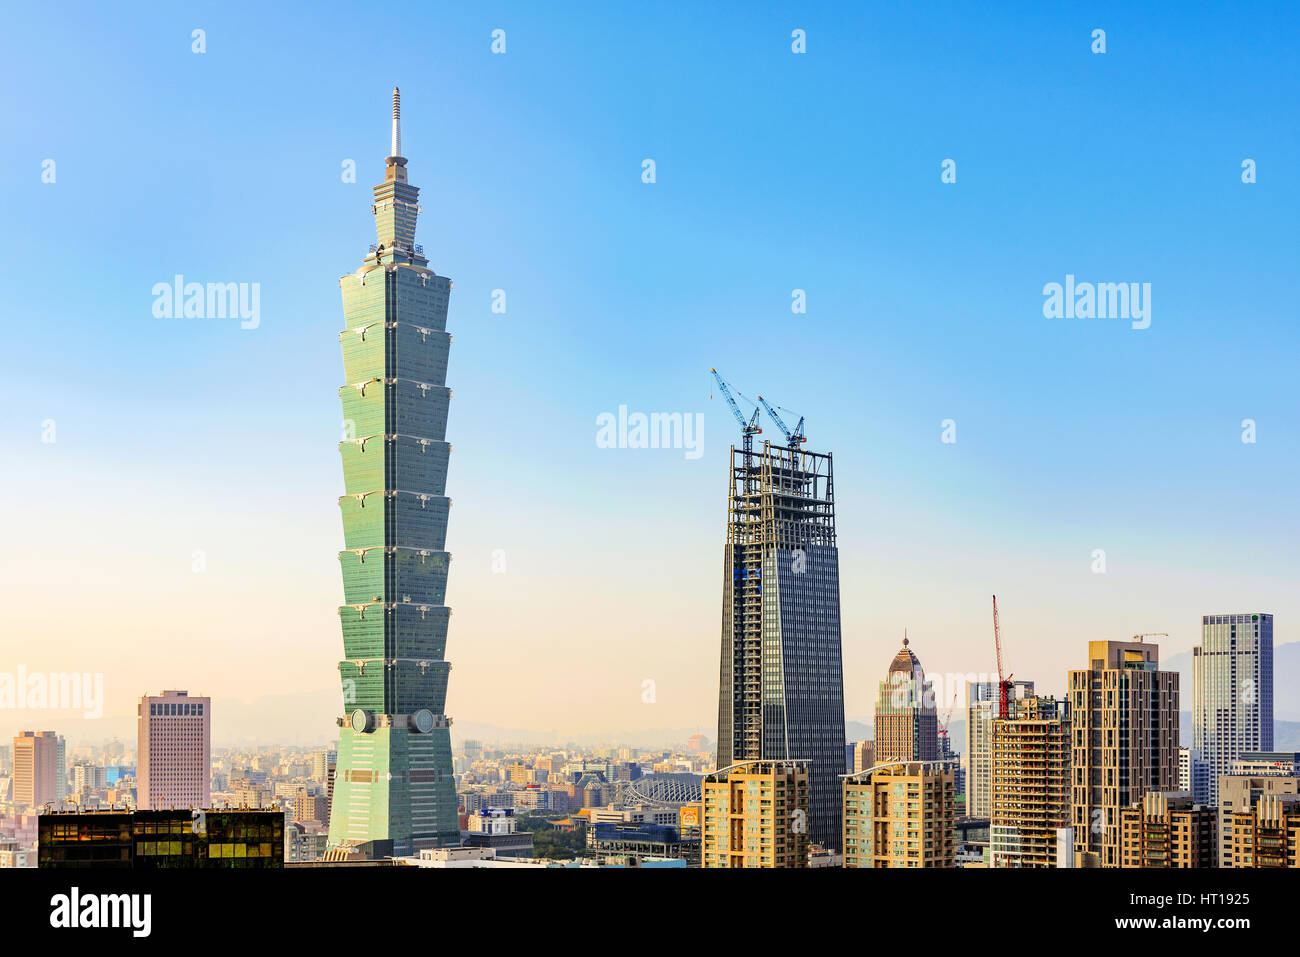 TAIPEI, TAIWAN - NOVEMBER 11: View of Taipei 101 world trade center building and modern architecture in the downtown - Stock Image